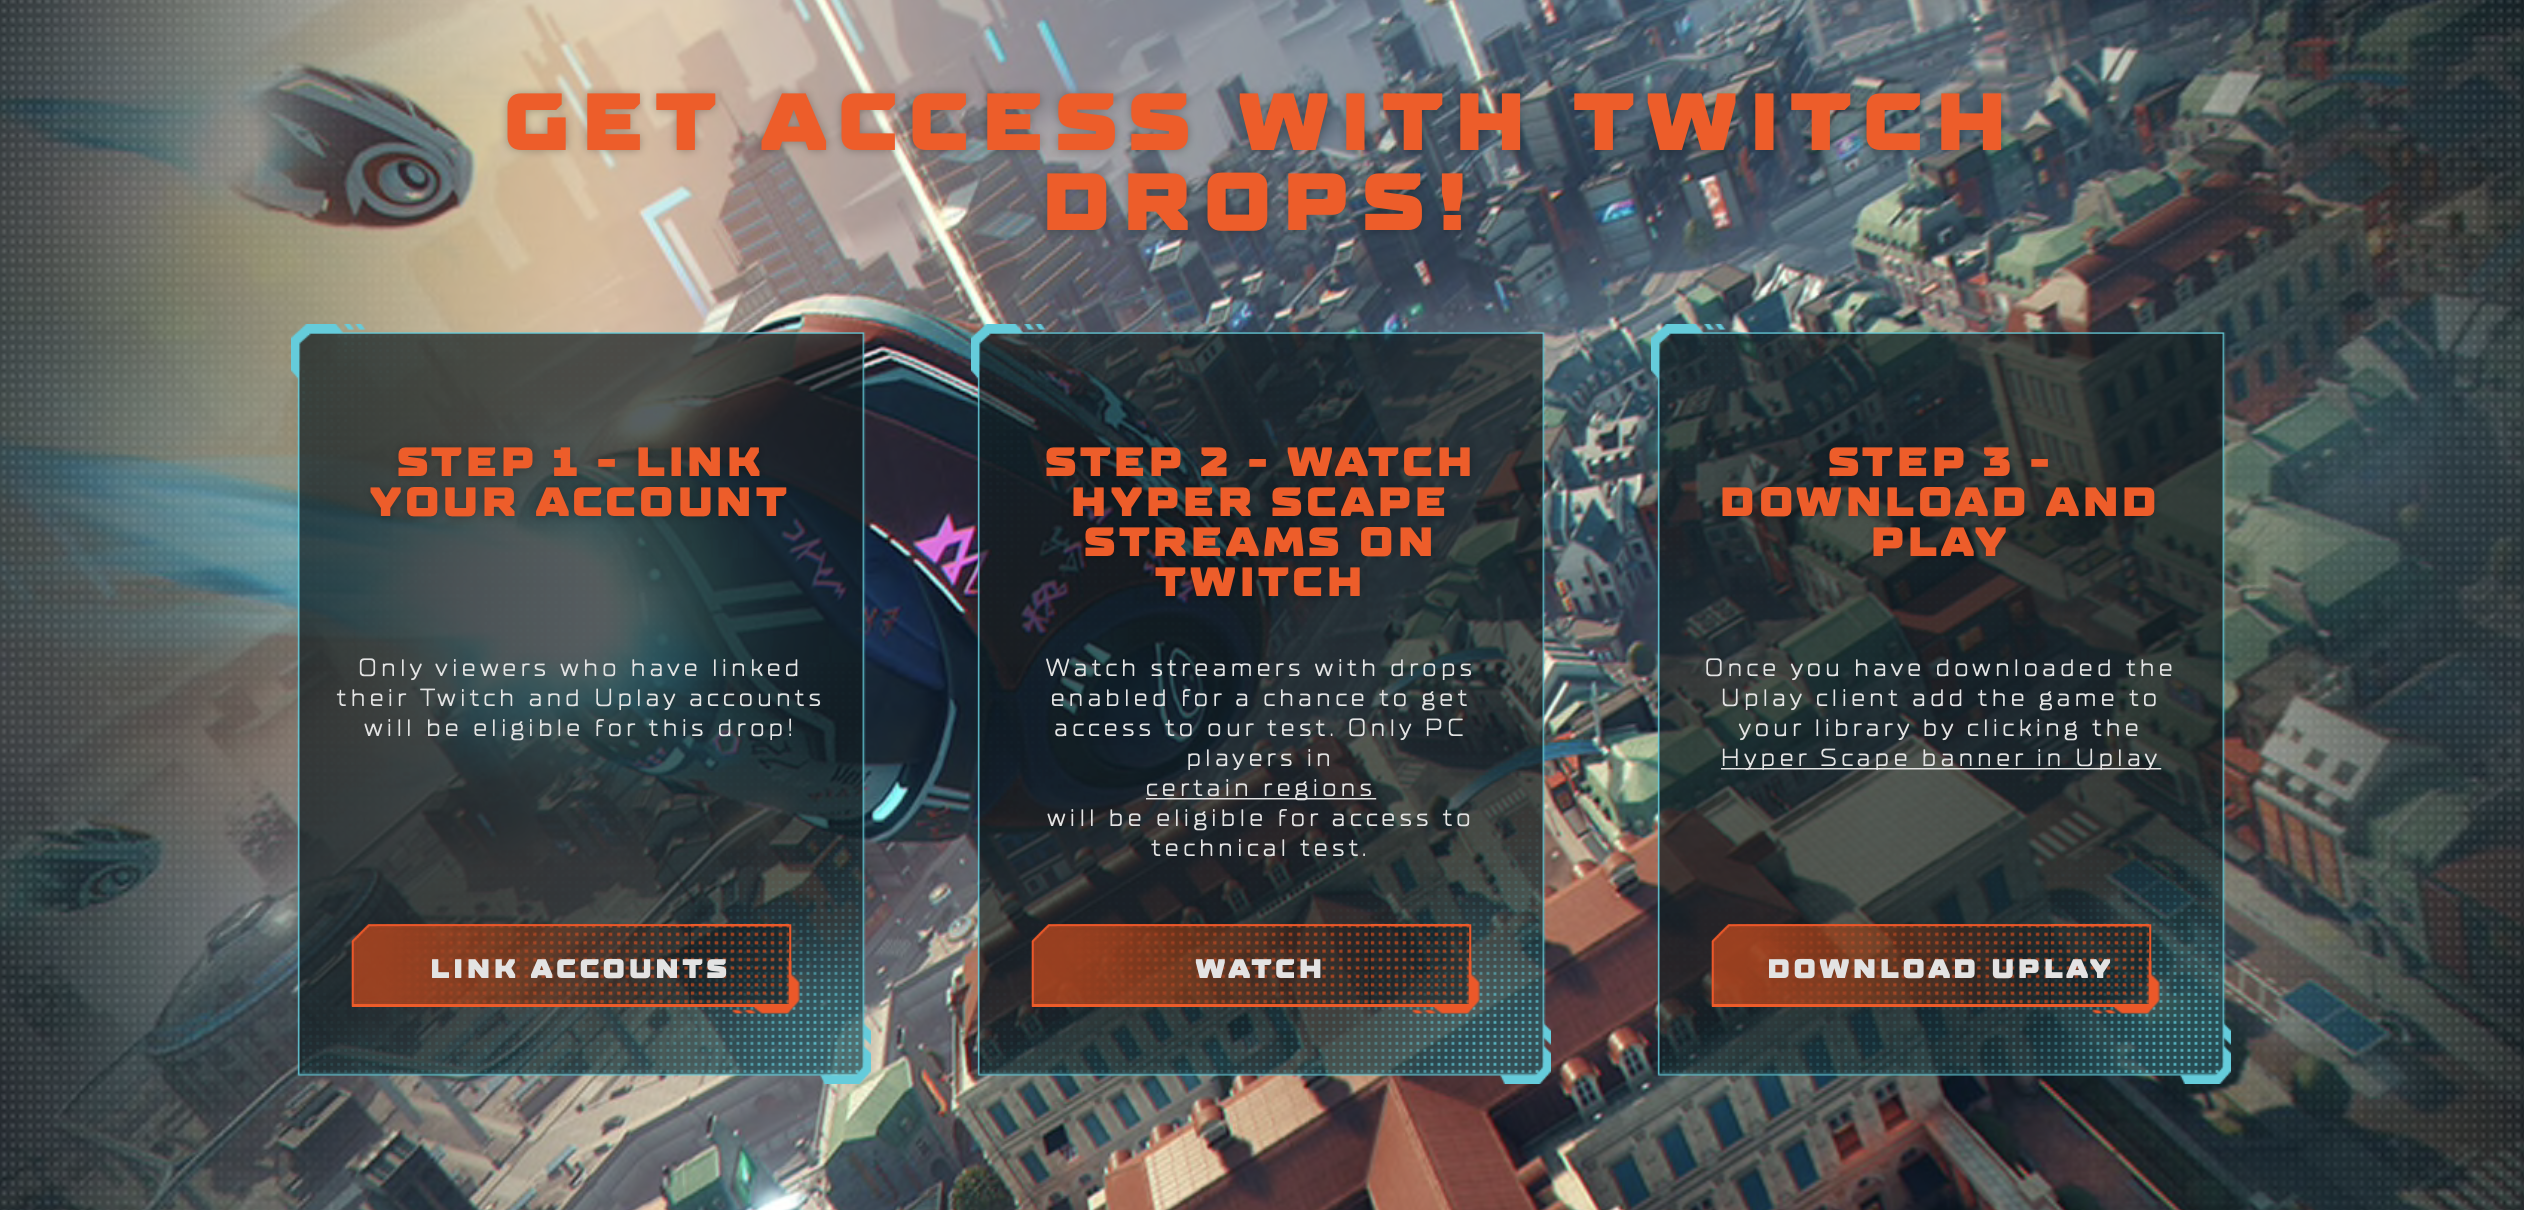 Ubisoft's instructions for Hyper Scape fans to sign up for the closet beta and Technical Test.